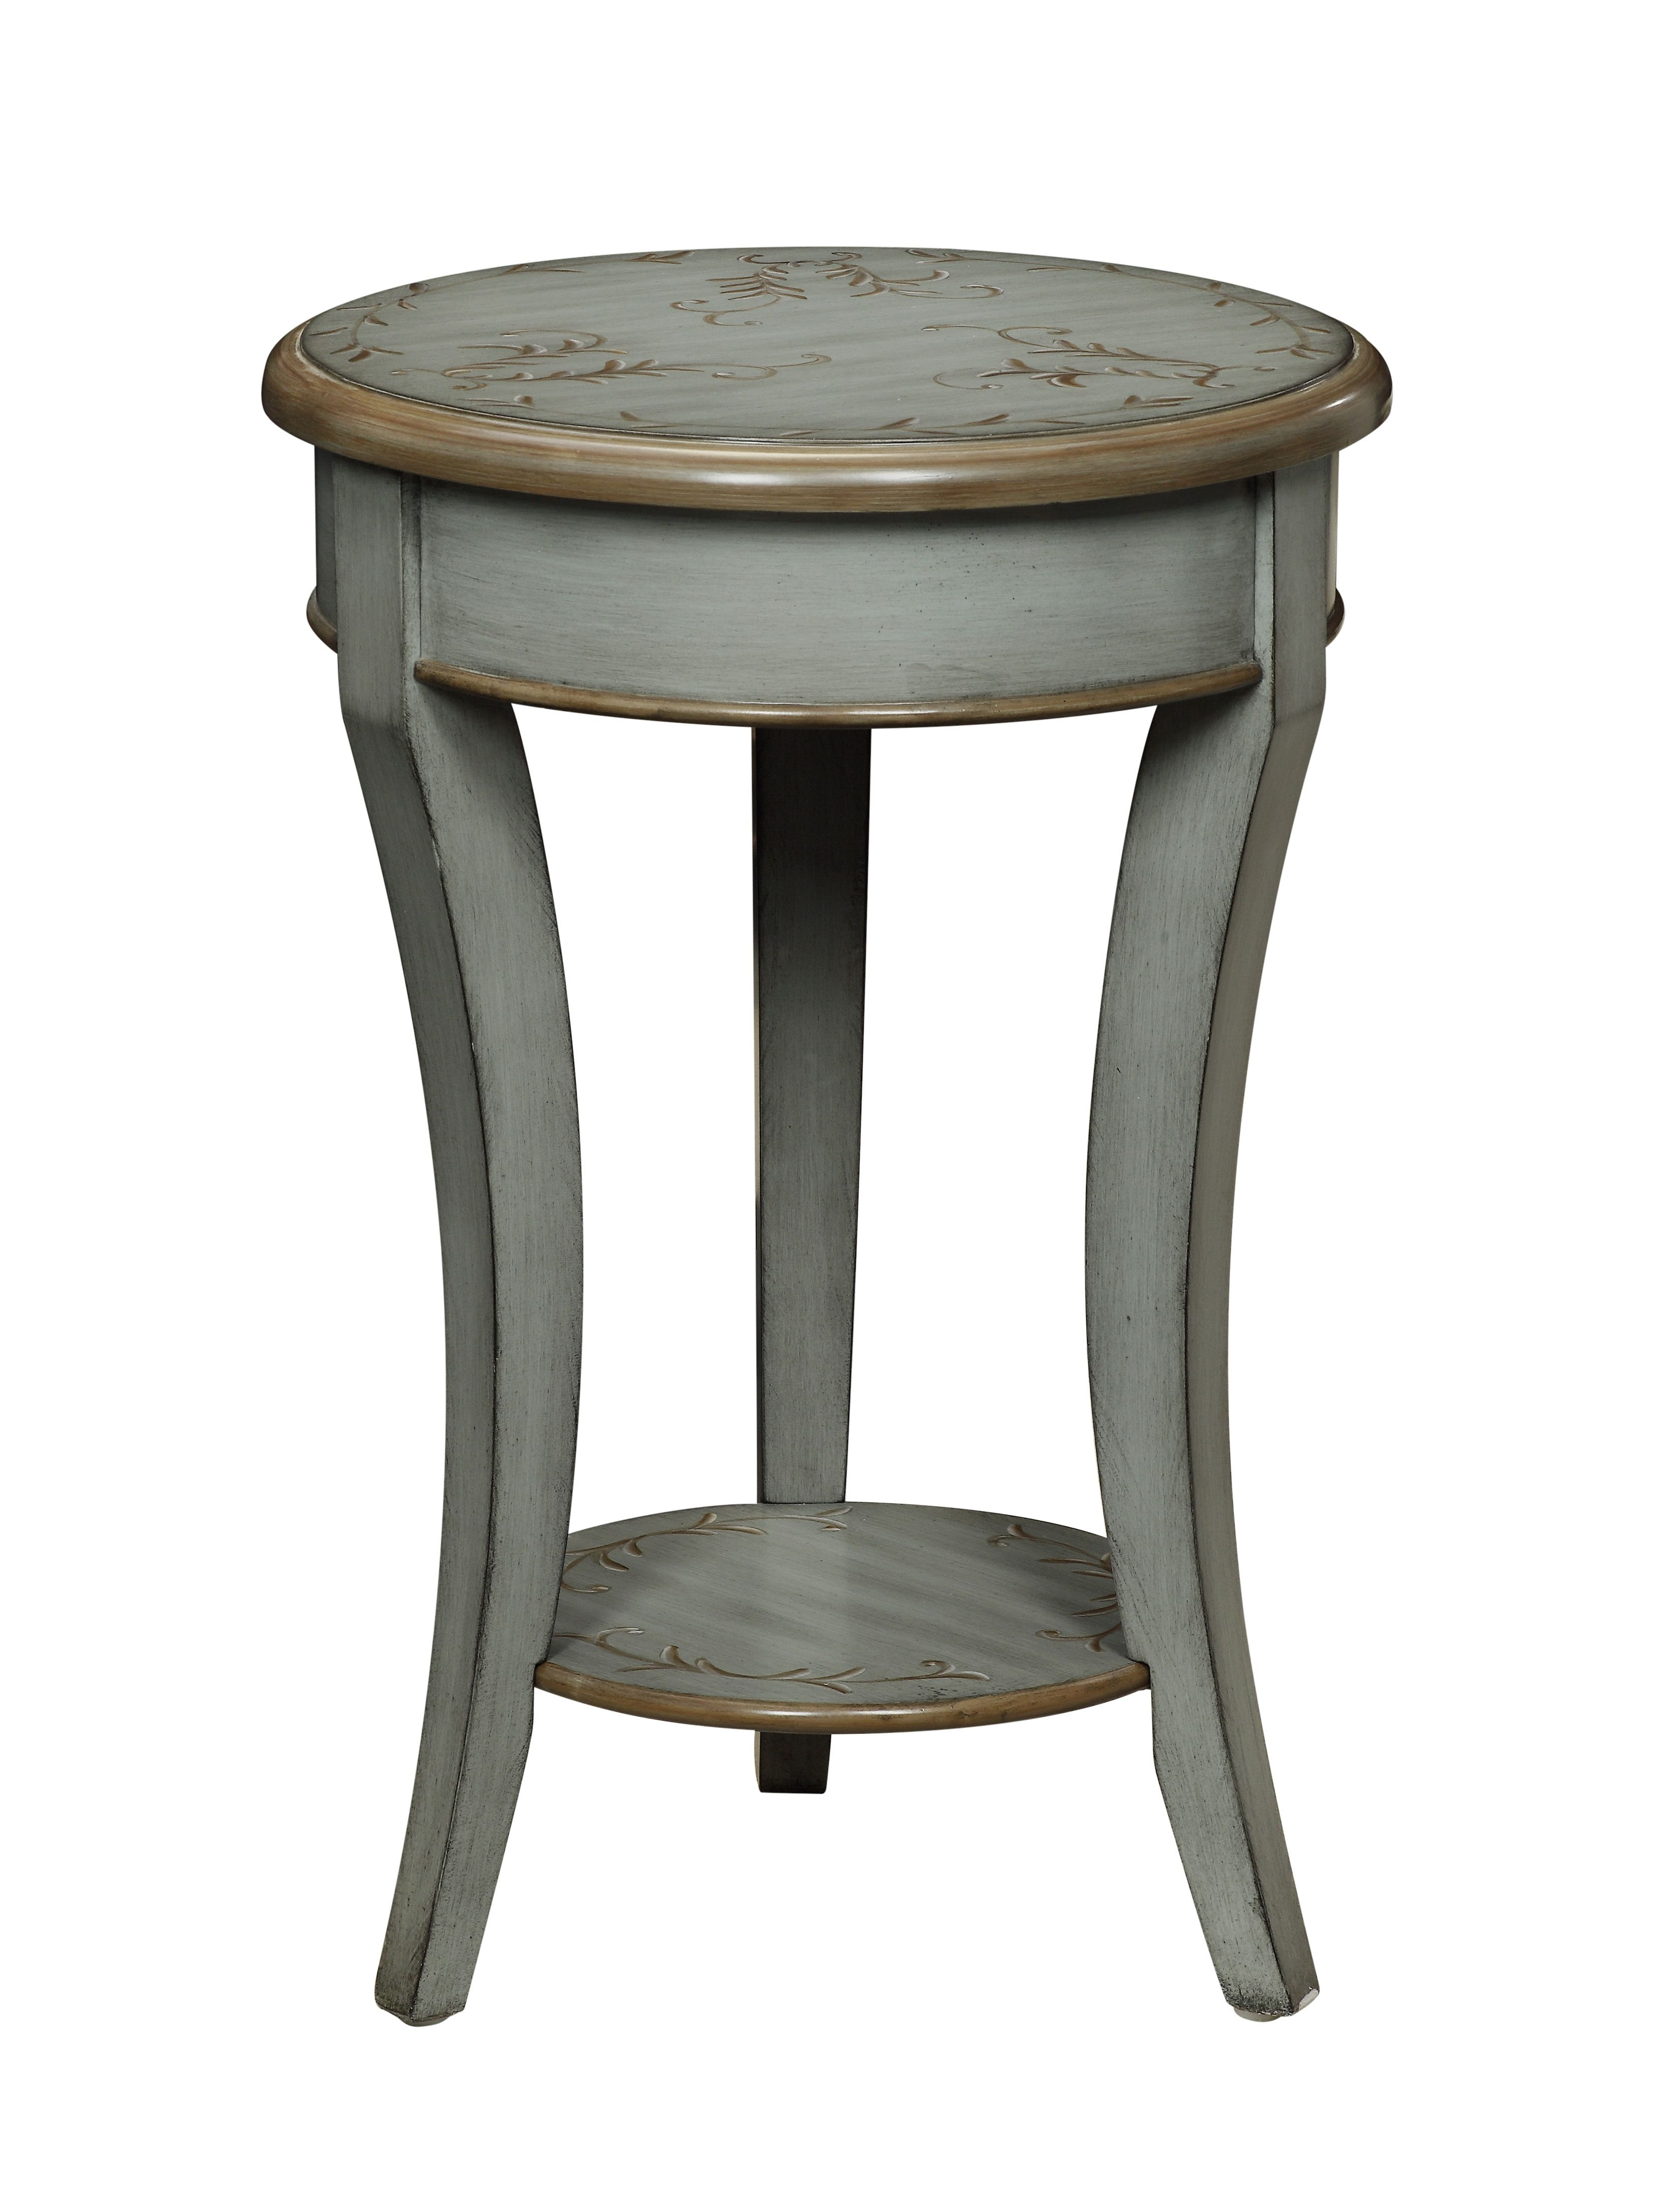 17 Best images about Accent Tables on Pinterest   End table sets  Nesting  tables and Birch lane. 17 Best images about Accent Tables on Pinterest   End table sets